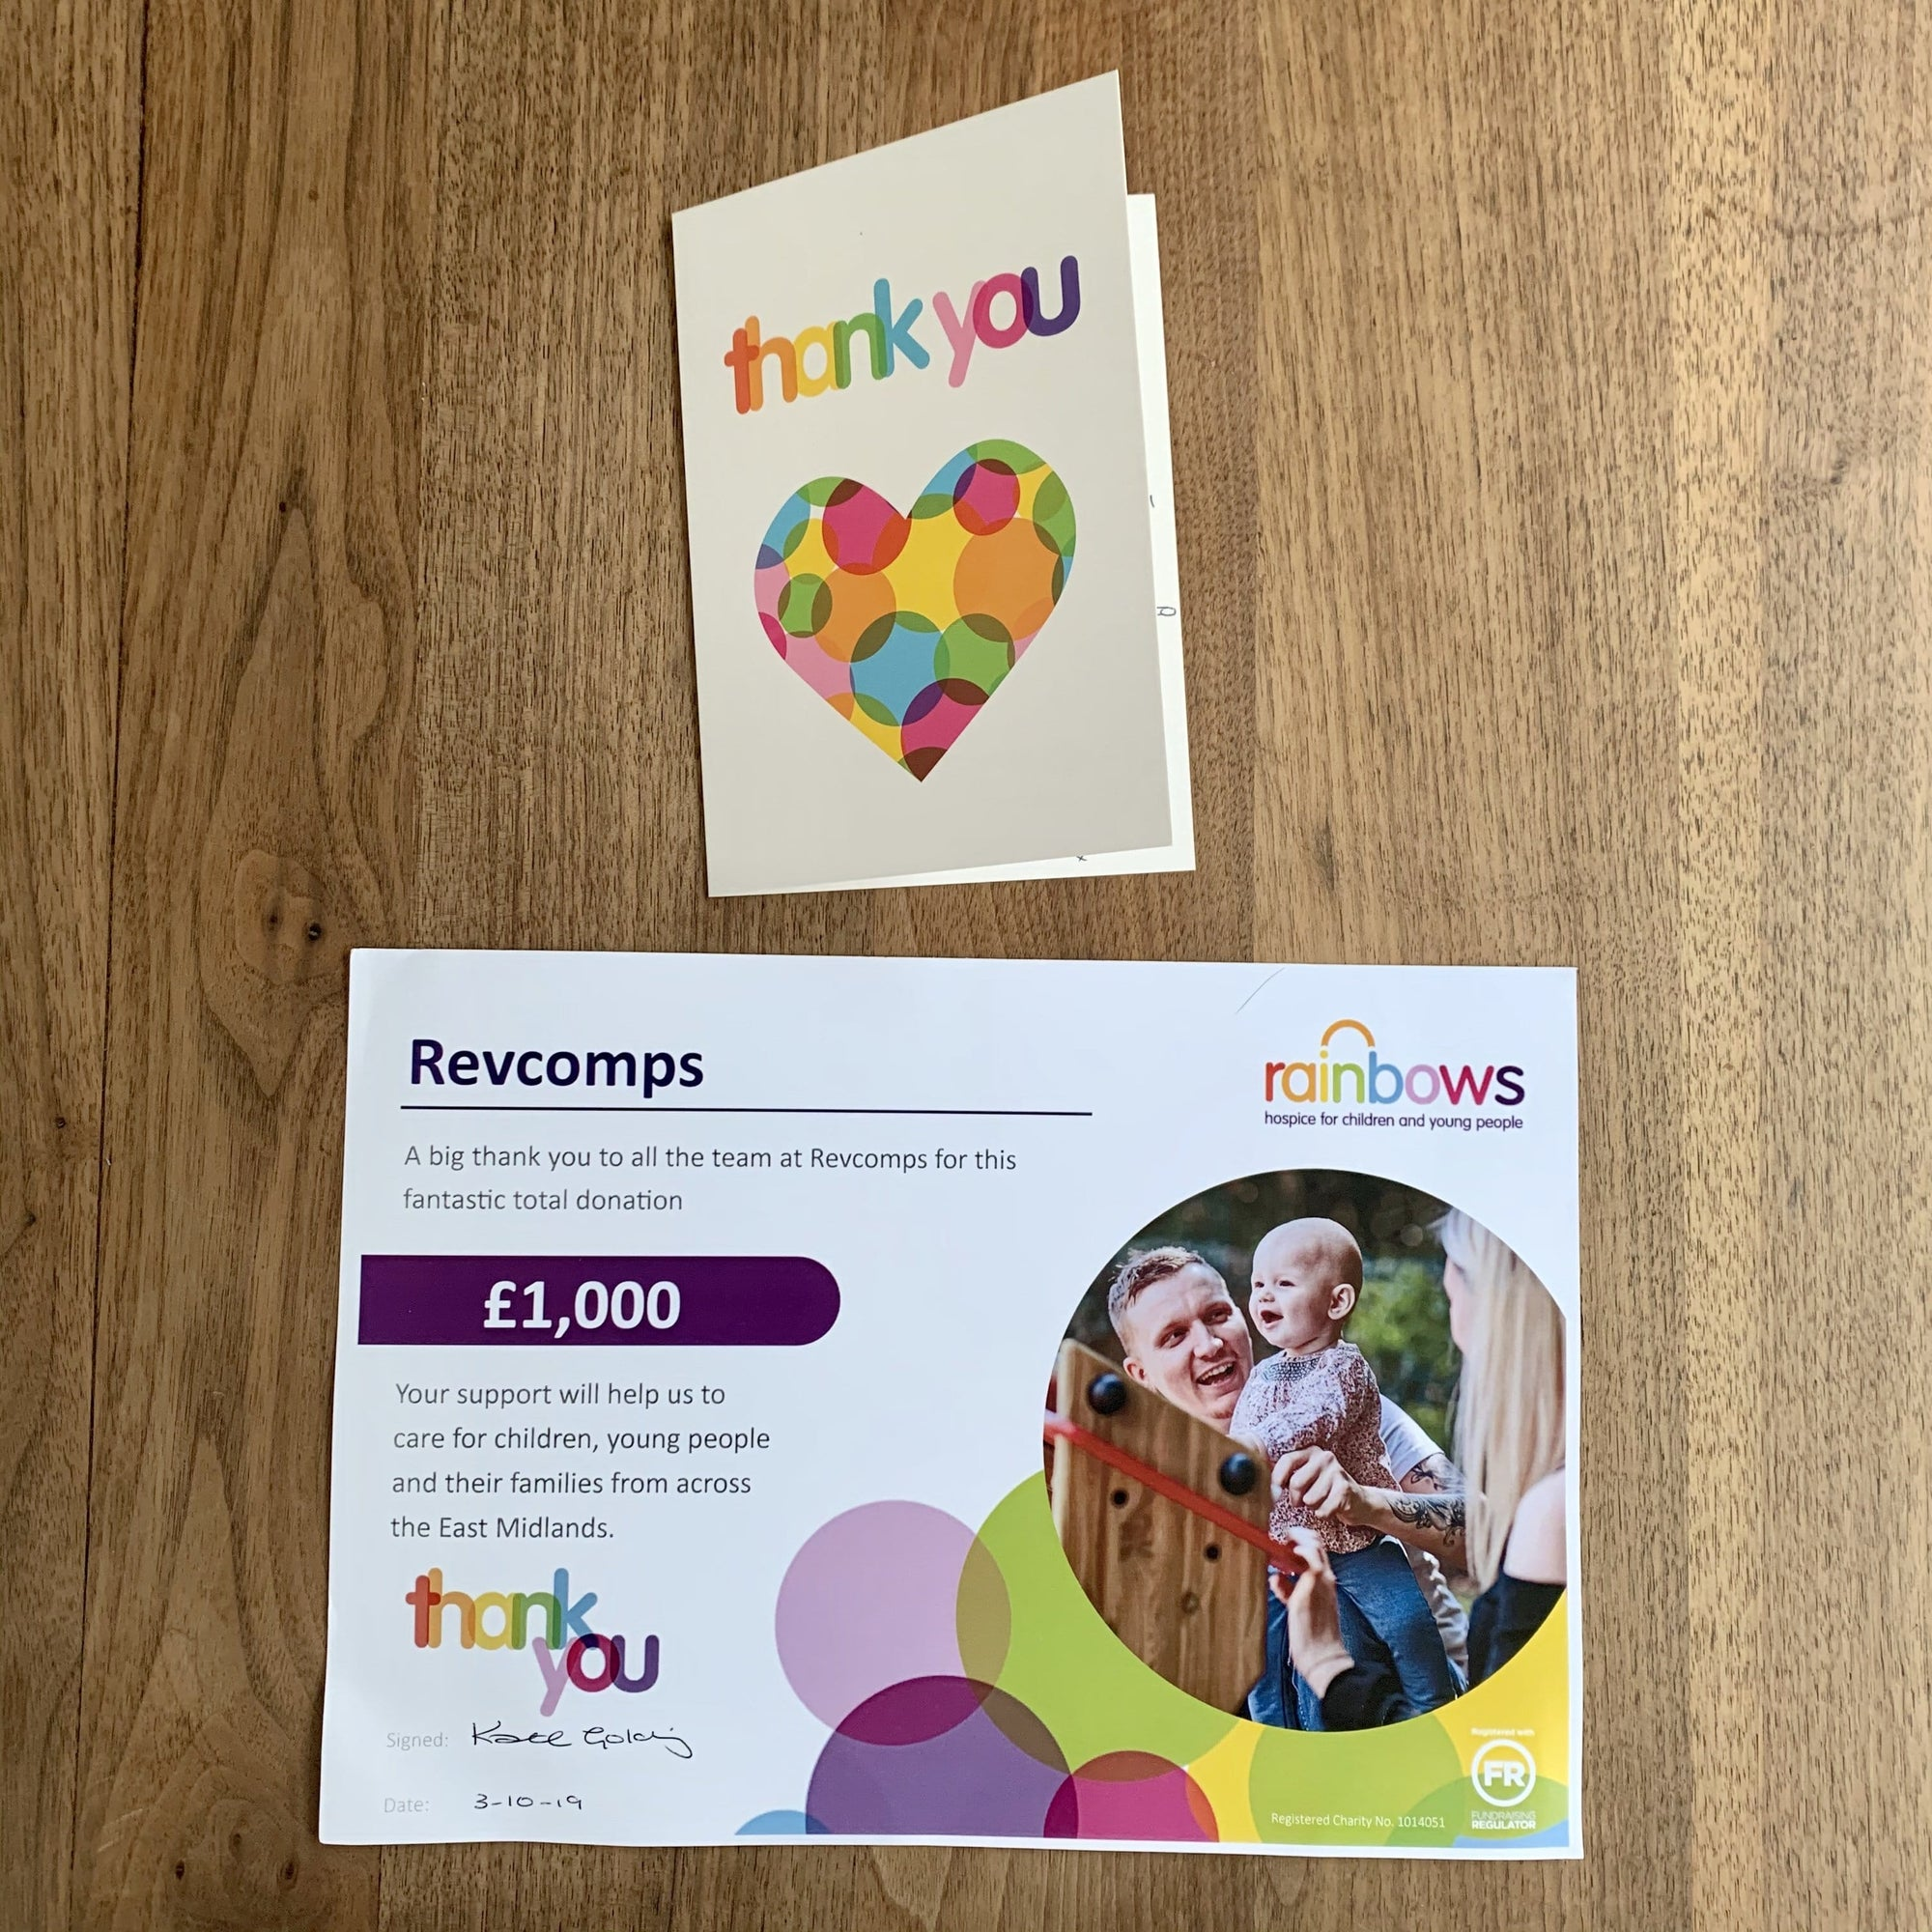 £1000 - Rainbow Children's Hospice